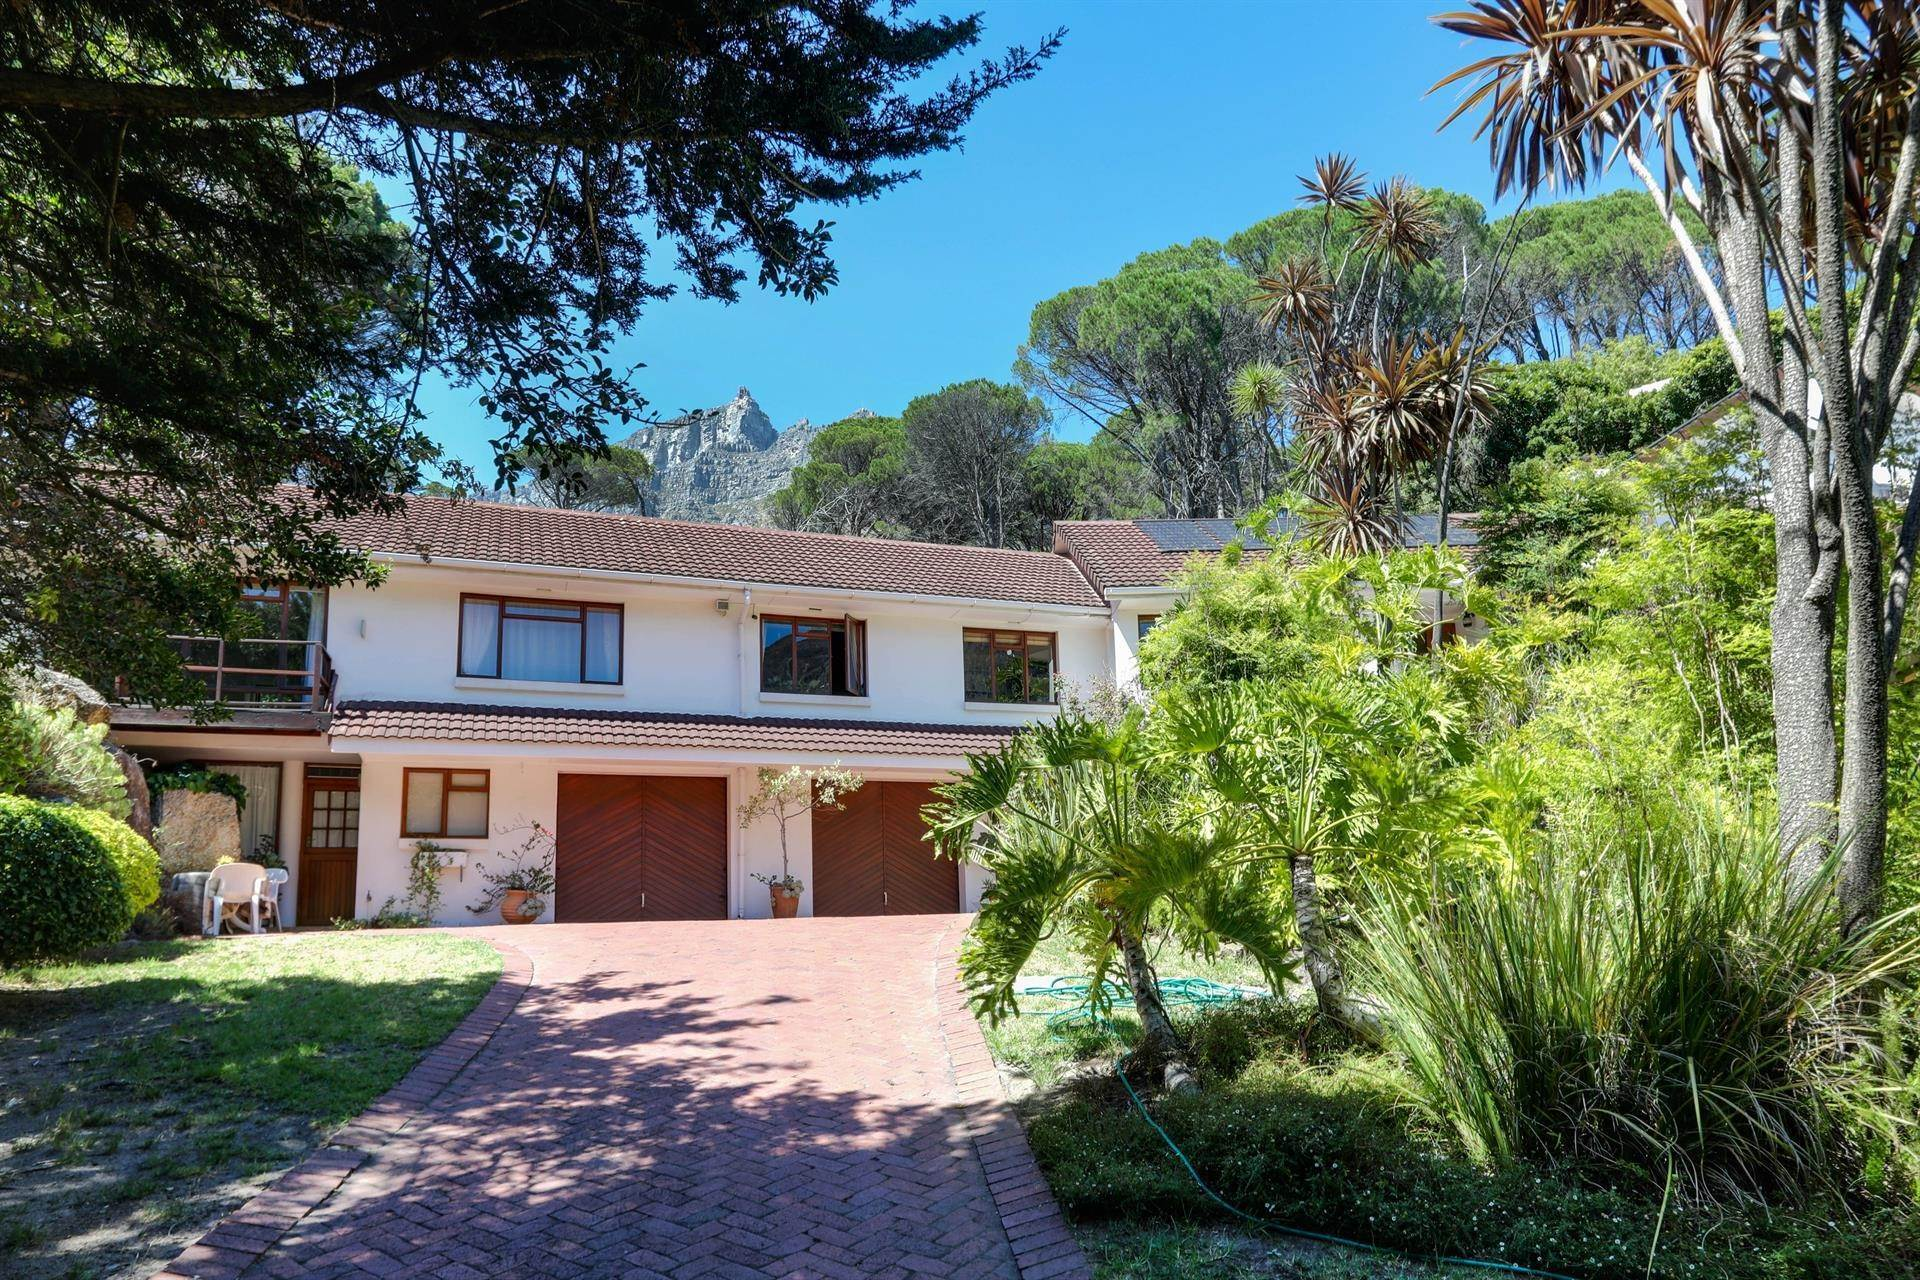 Single Family Home for Sale at EXCEPTIONAL FAMILY HOME IN PRIME LOCATION Cape Town, South Africa